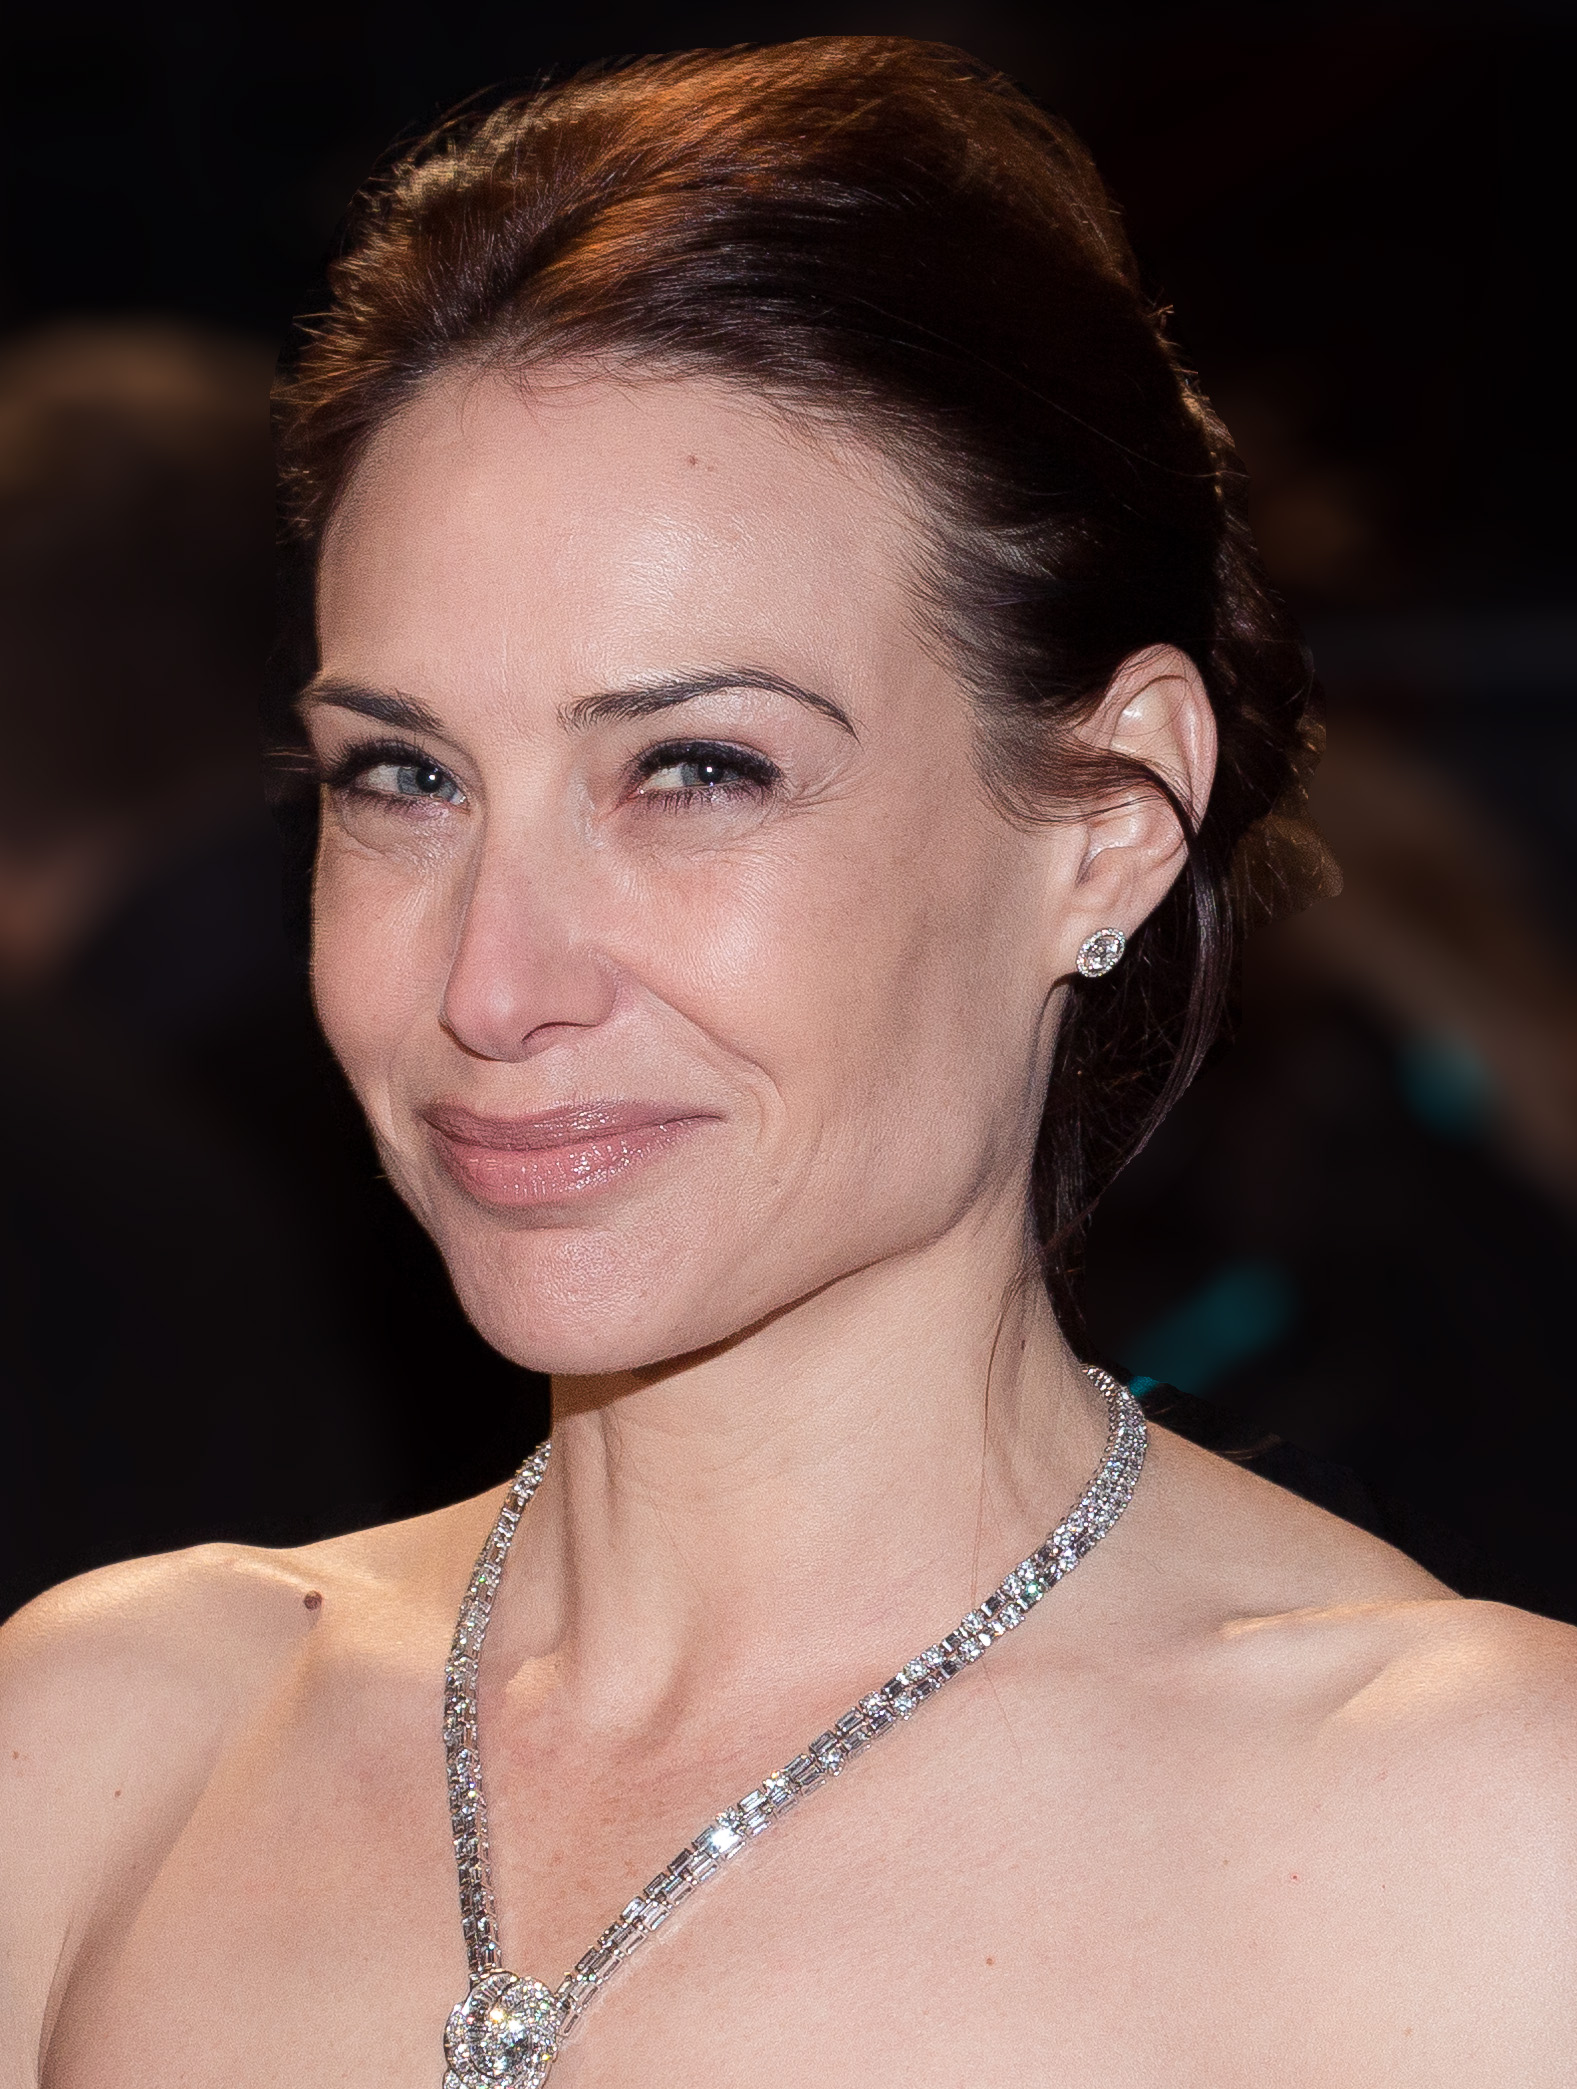 Claire Forlani earned a  million dollar salary - leaving the net worth at 5 million in 2018